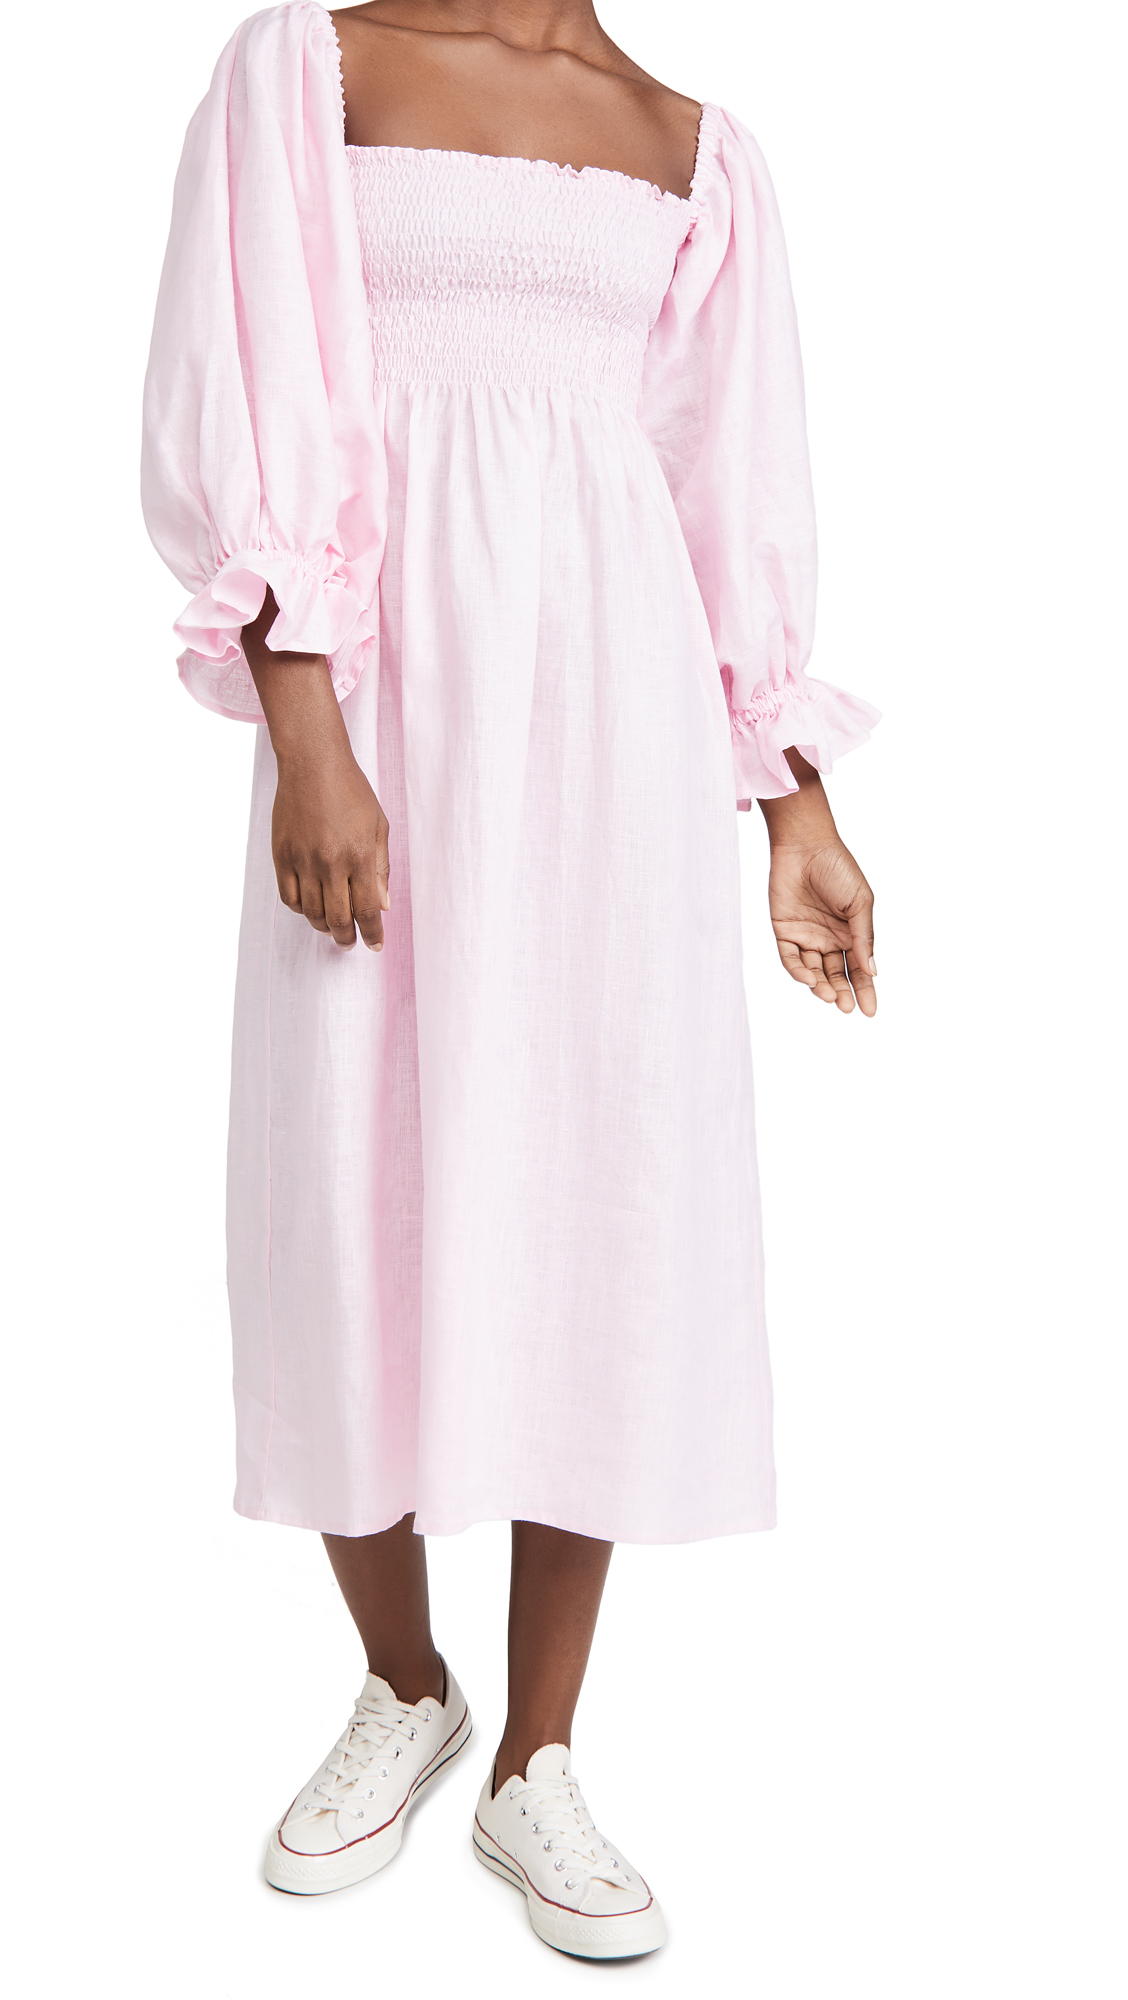 Sleeper Atlanta Linen Dress in Pink